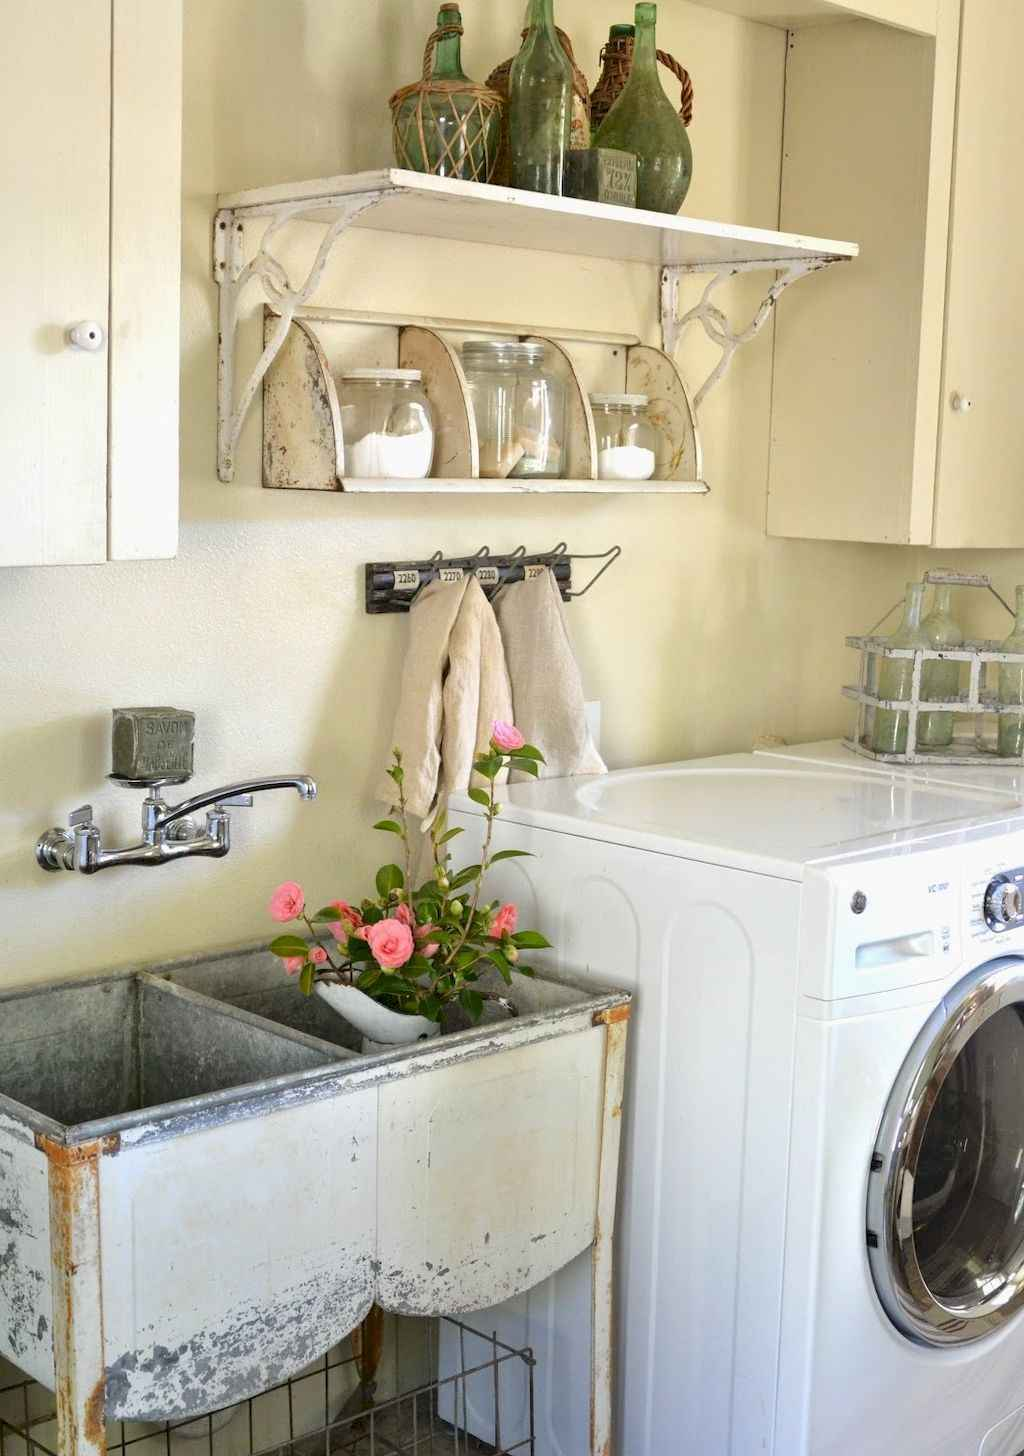 45 Rustic Farmhouse Laundry Room Design Ideas and Makeover (8)